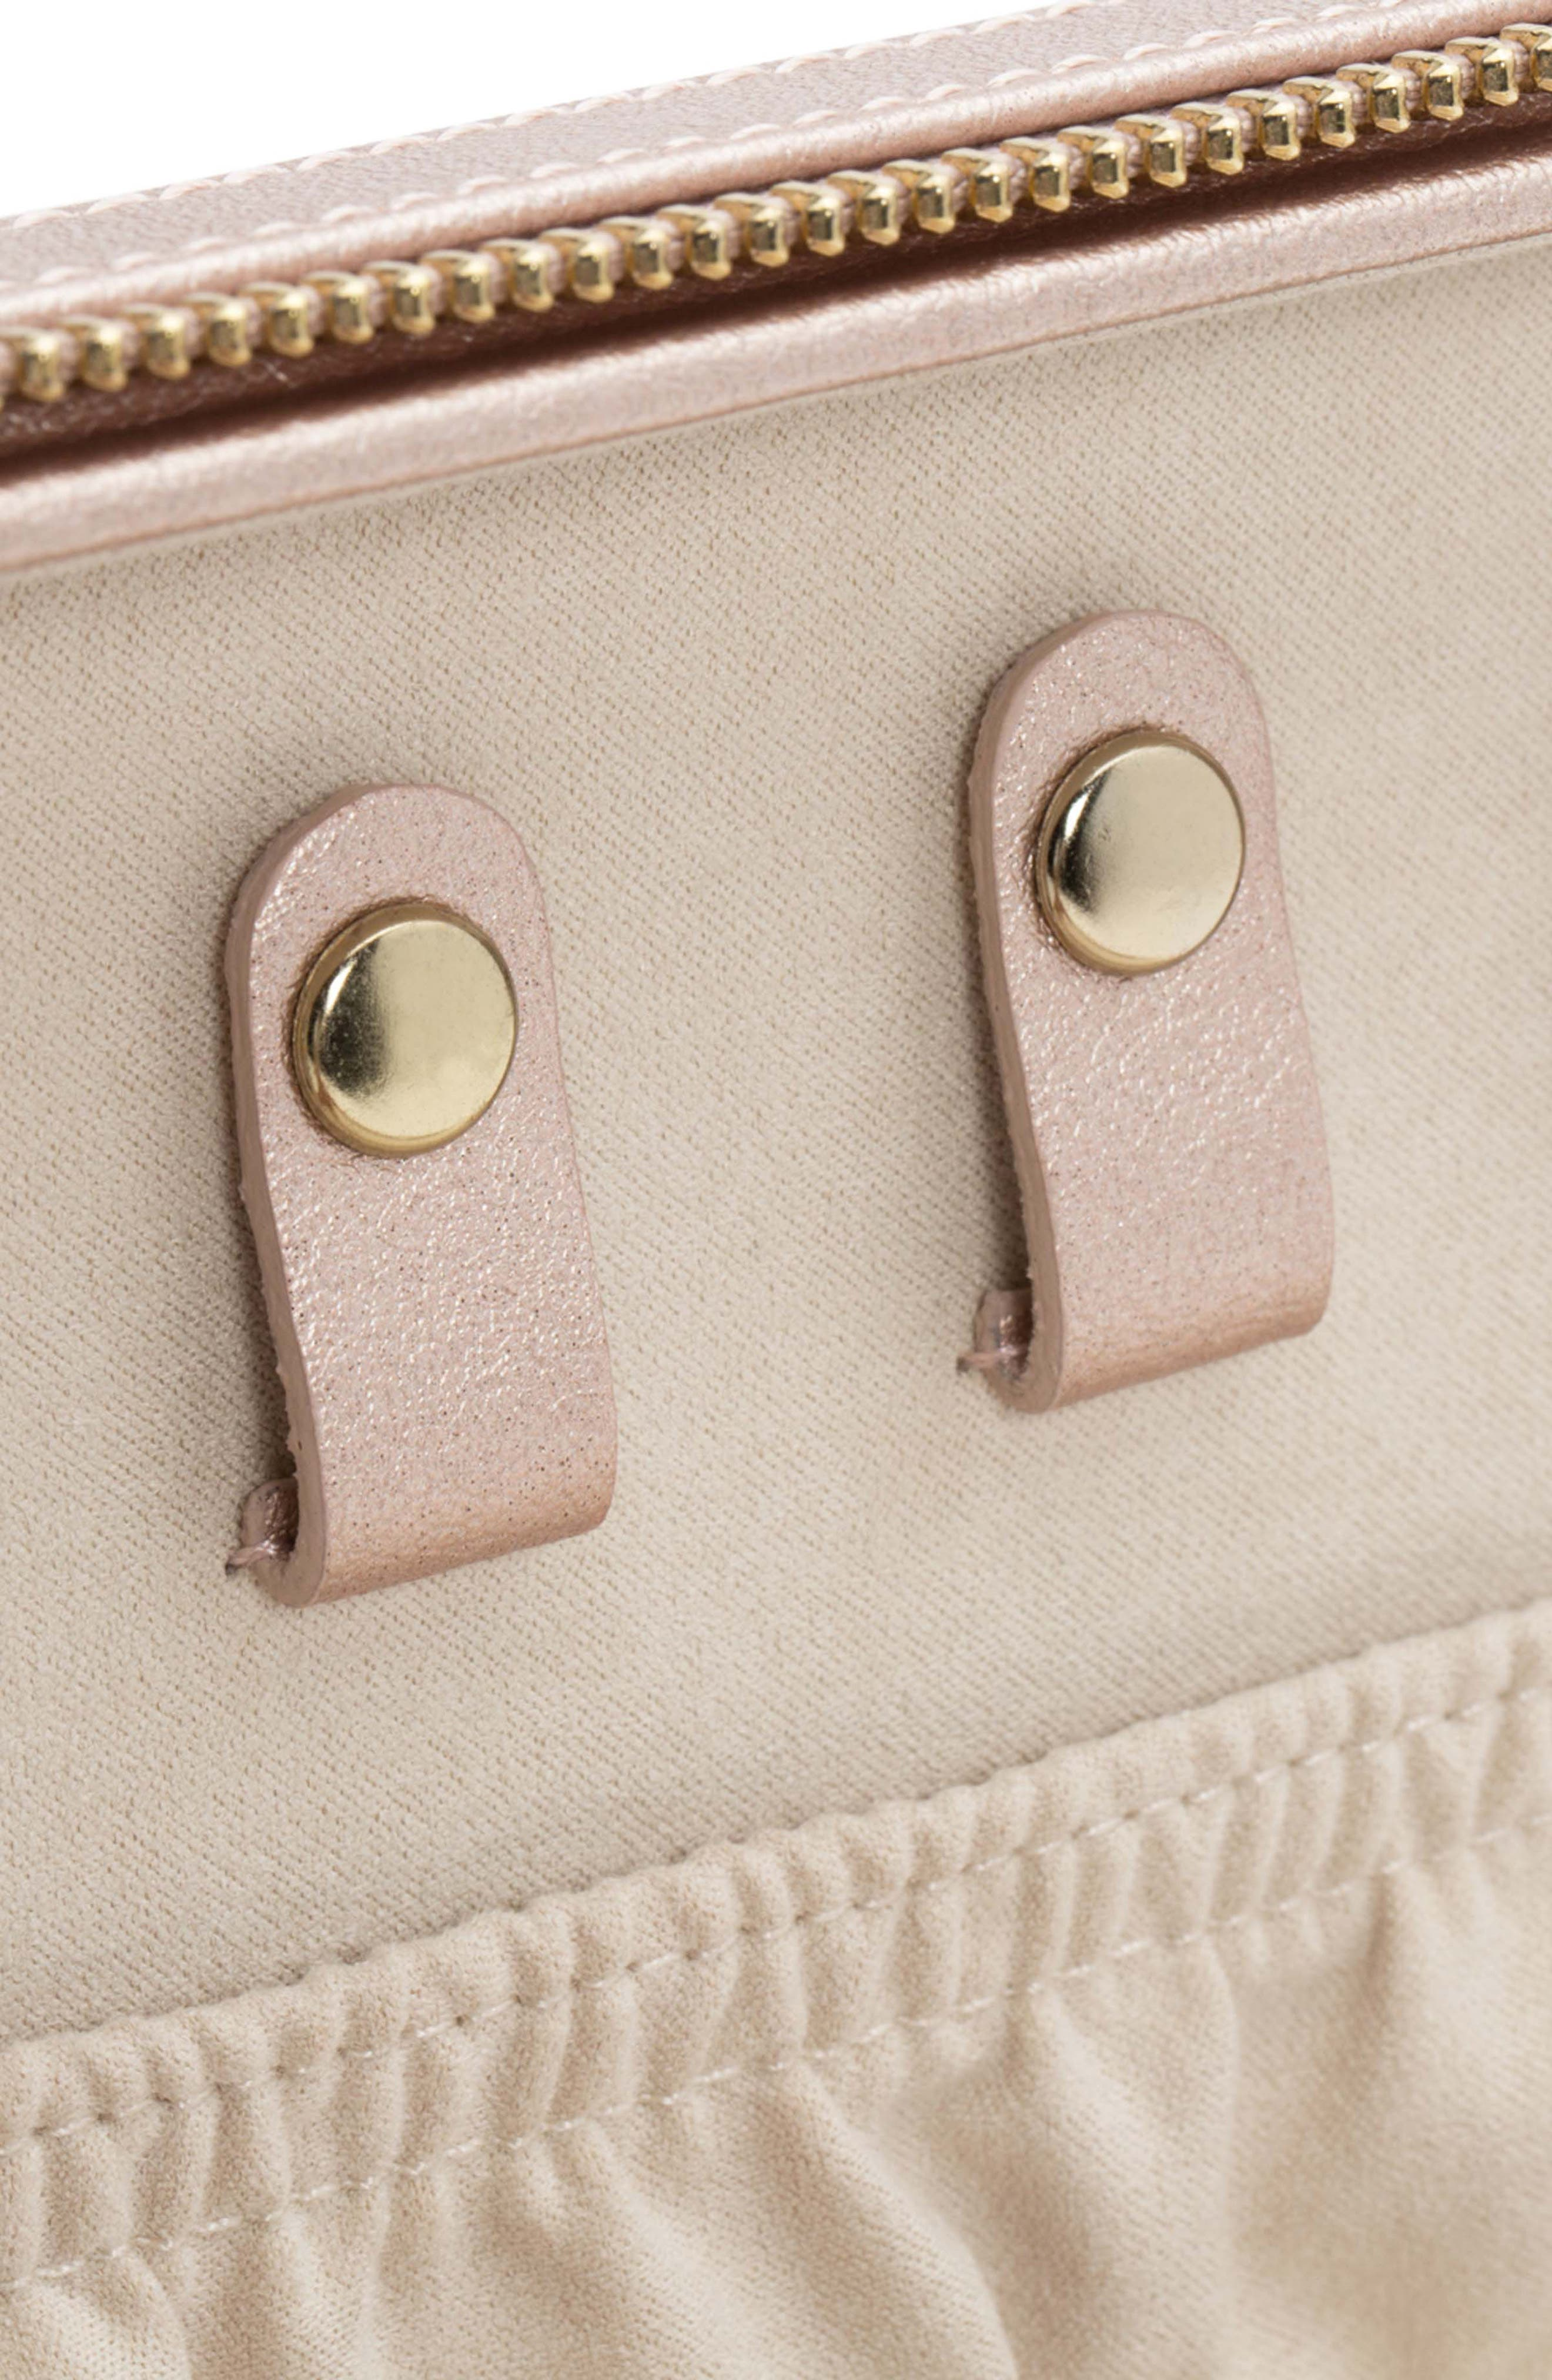 Palermo Zip Jewelry Case,                             Alternate thumbnail 5, color,                             ROSE GOLD